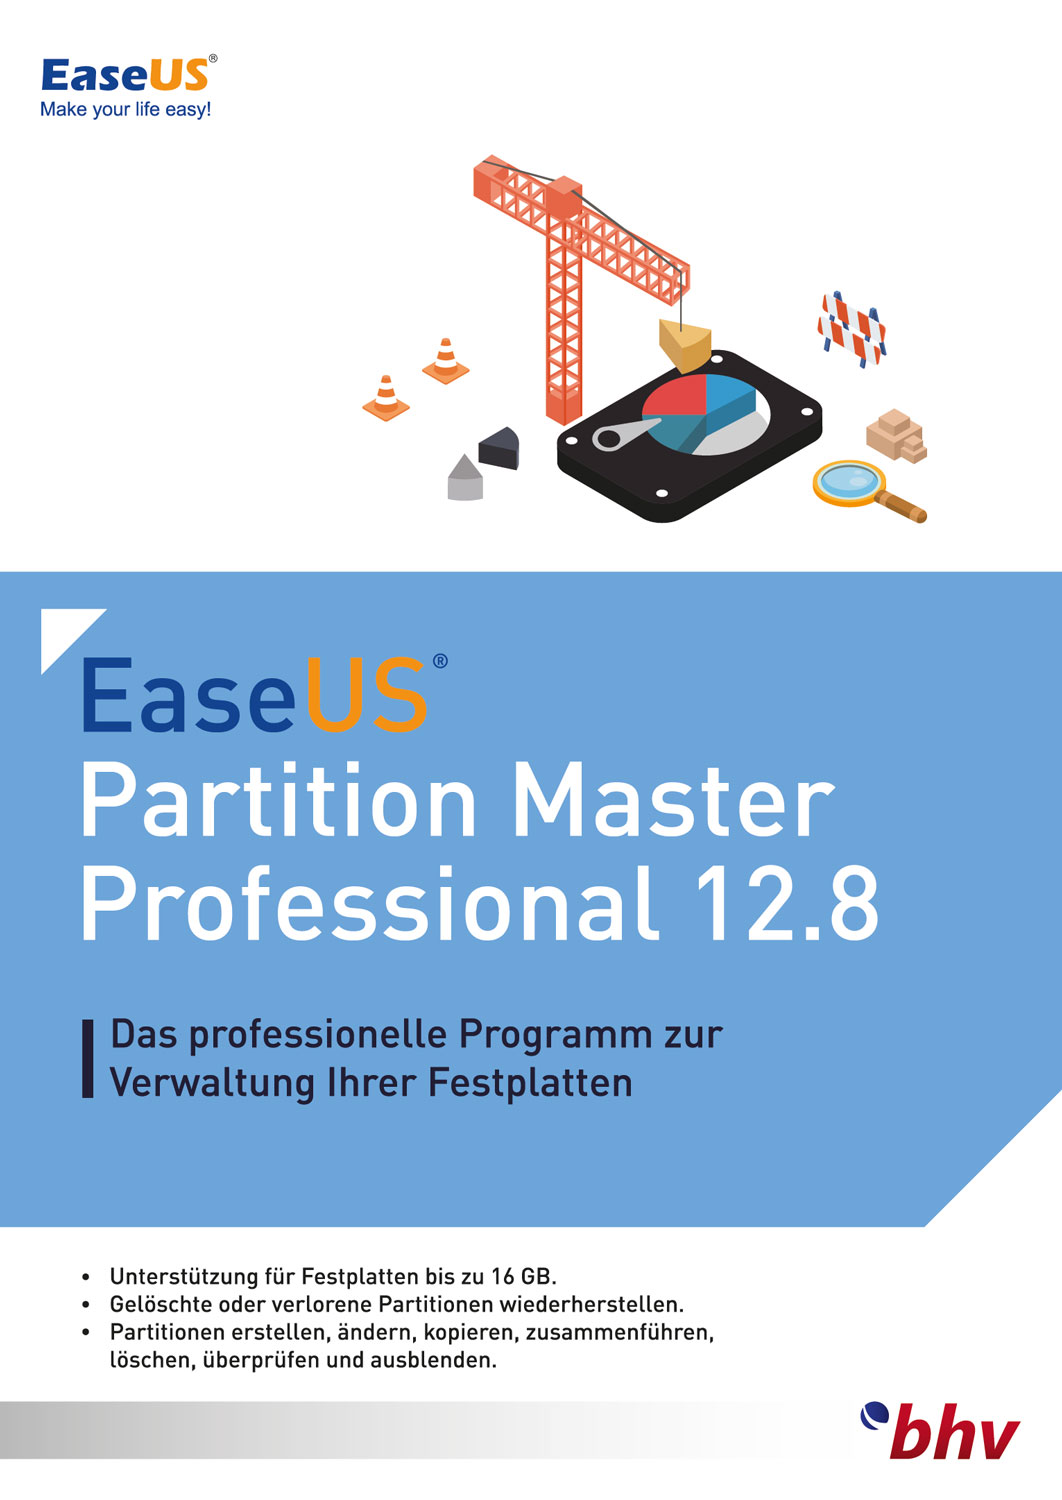 EaseUS Partition Master Professional 12.8 für PC [Download]